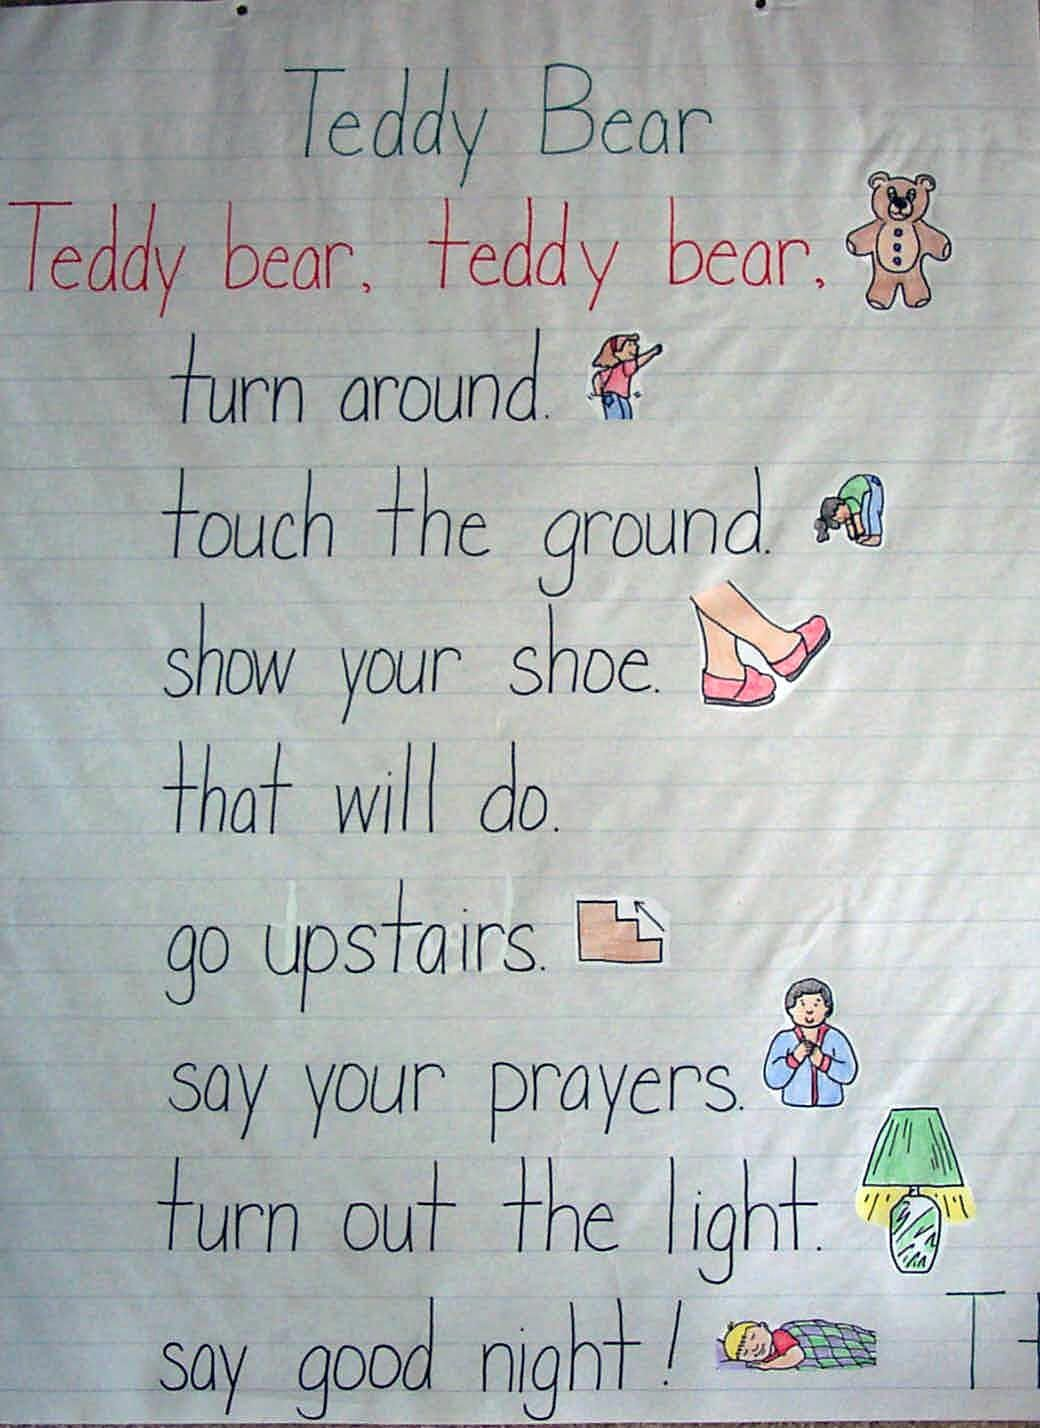 Read The Companion Poem Teddy Bear Teddy Bear To